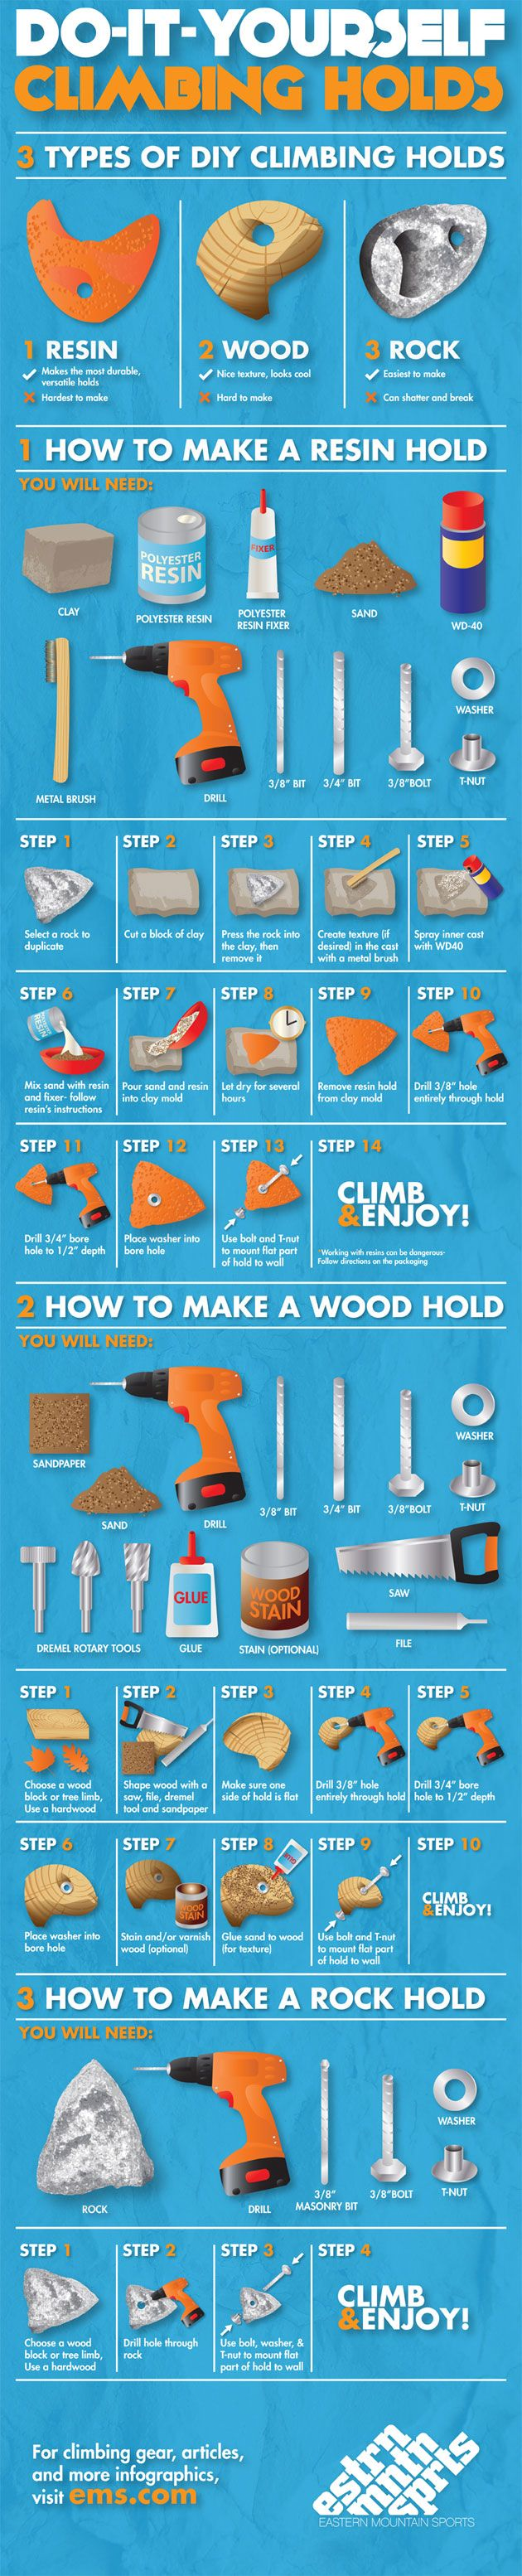 How to Make Climbing Holds | Climbing | Pinterest